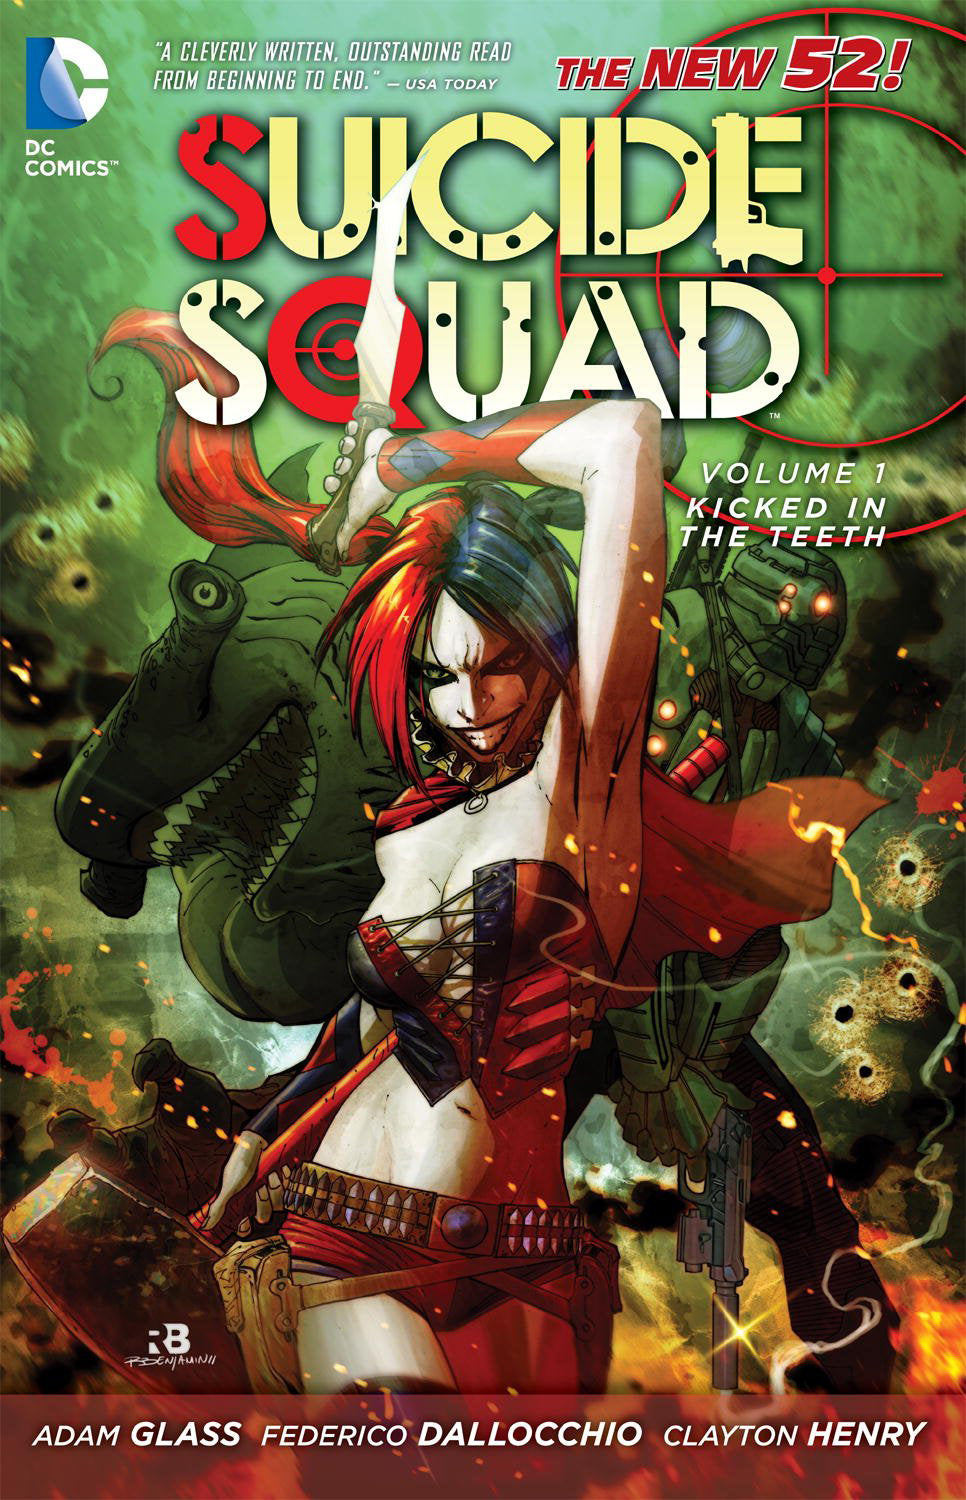 SUICIDE SQUAD TP VOL 01 KICKED IN THE TEETH (N52)